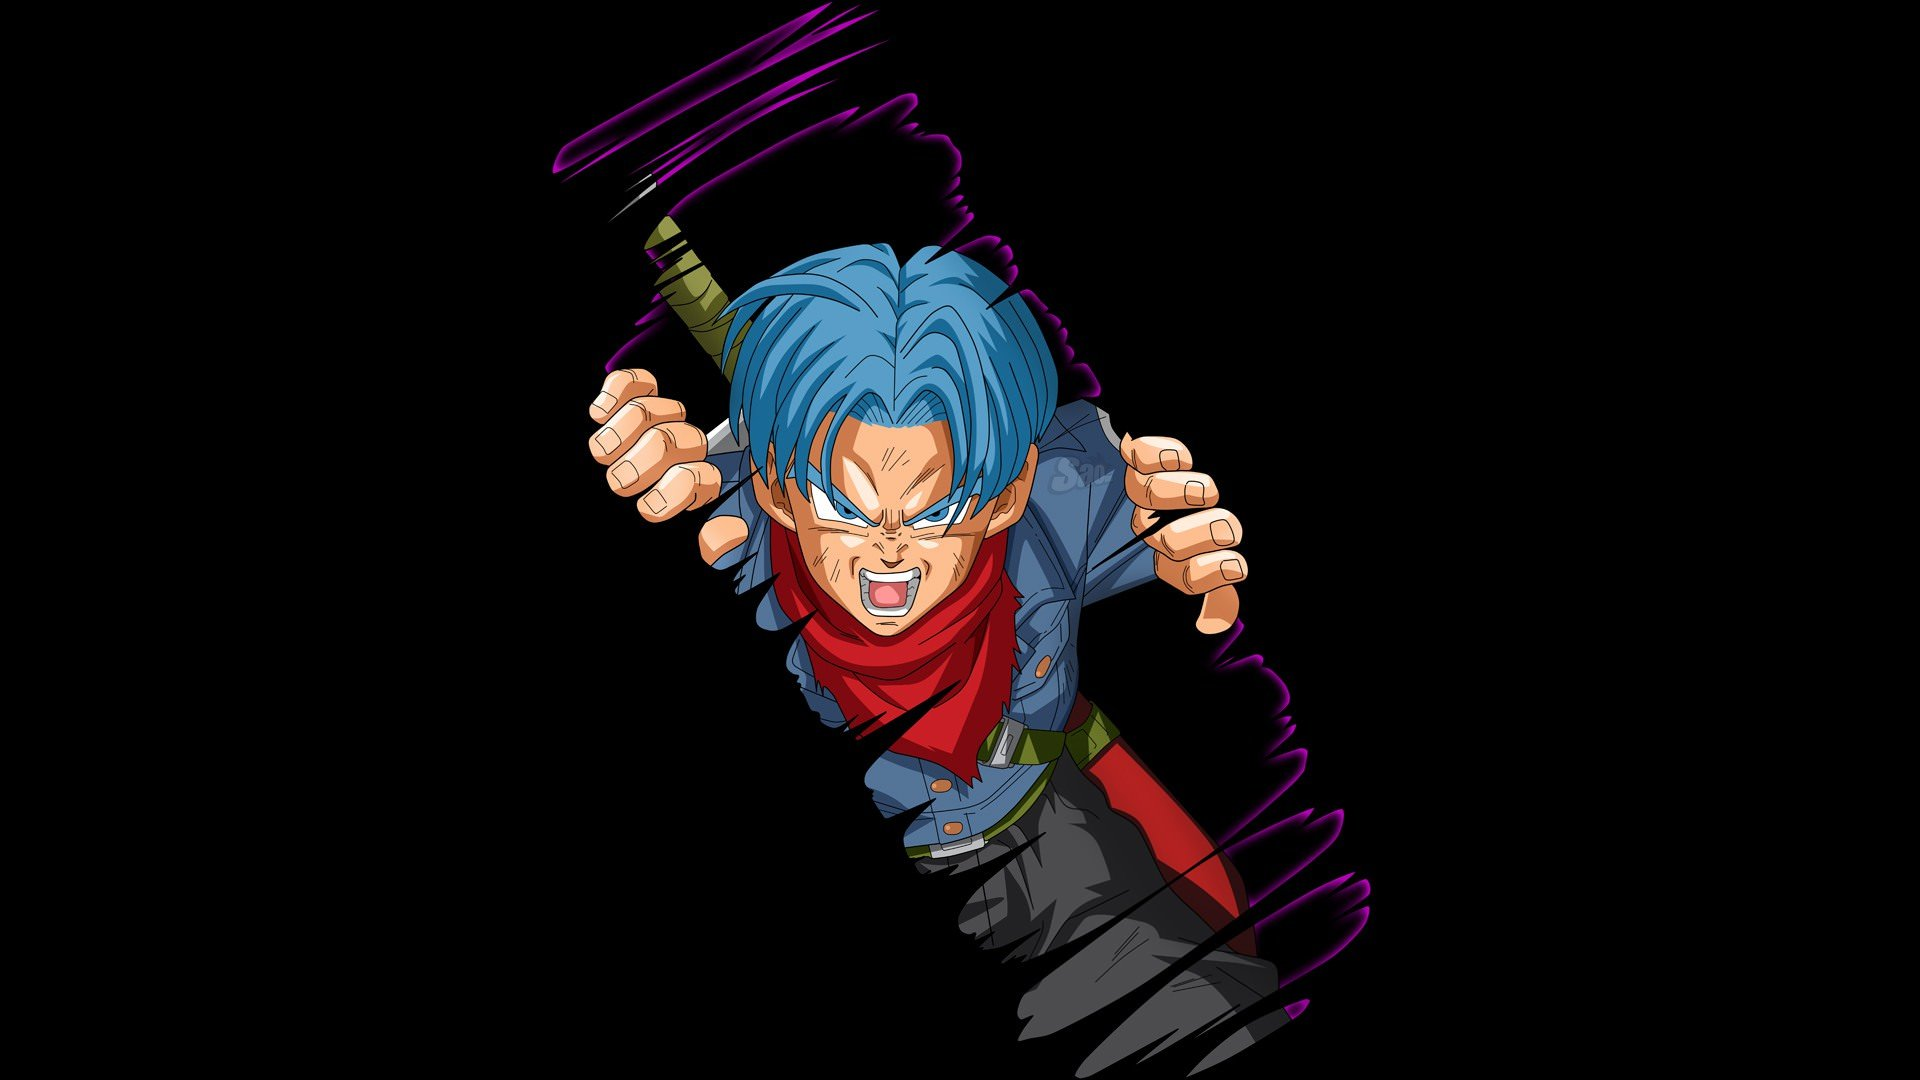 Trunks Wallpapers Top Free Trunks Backgrounds Wallpaperaccess